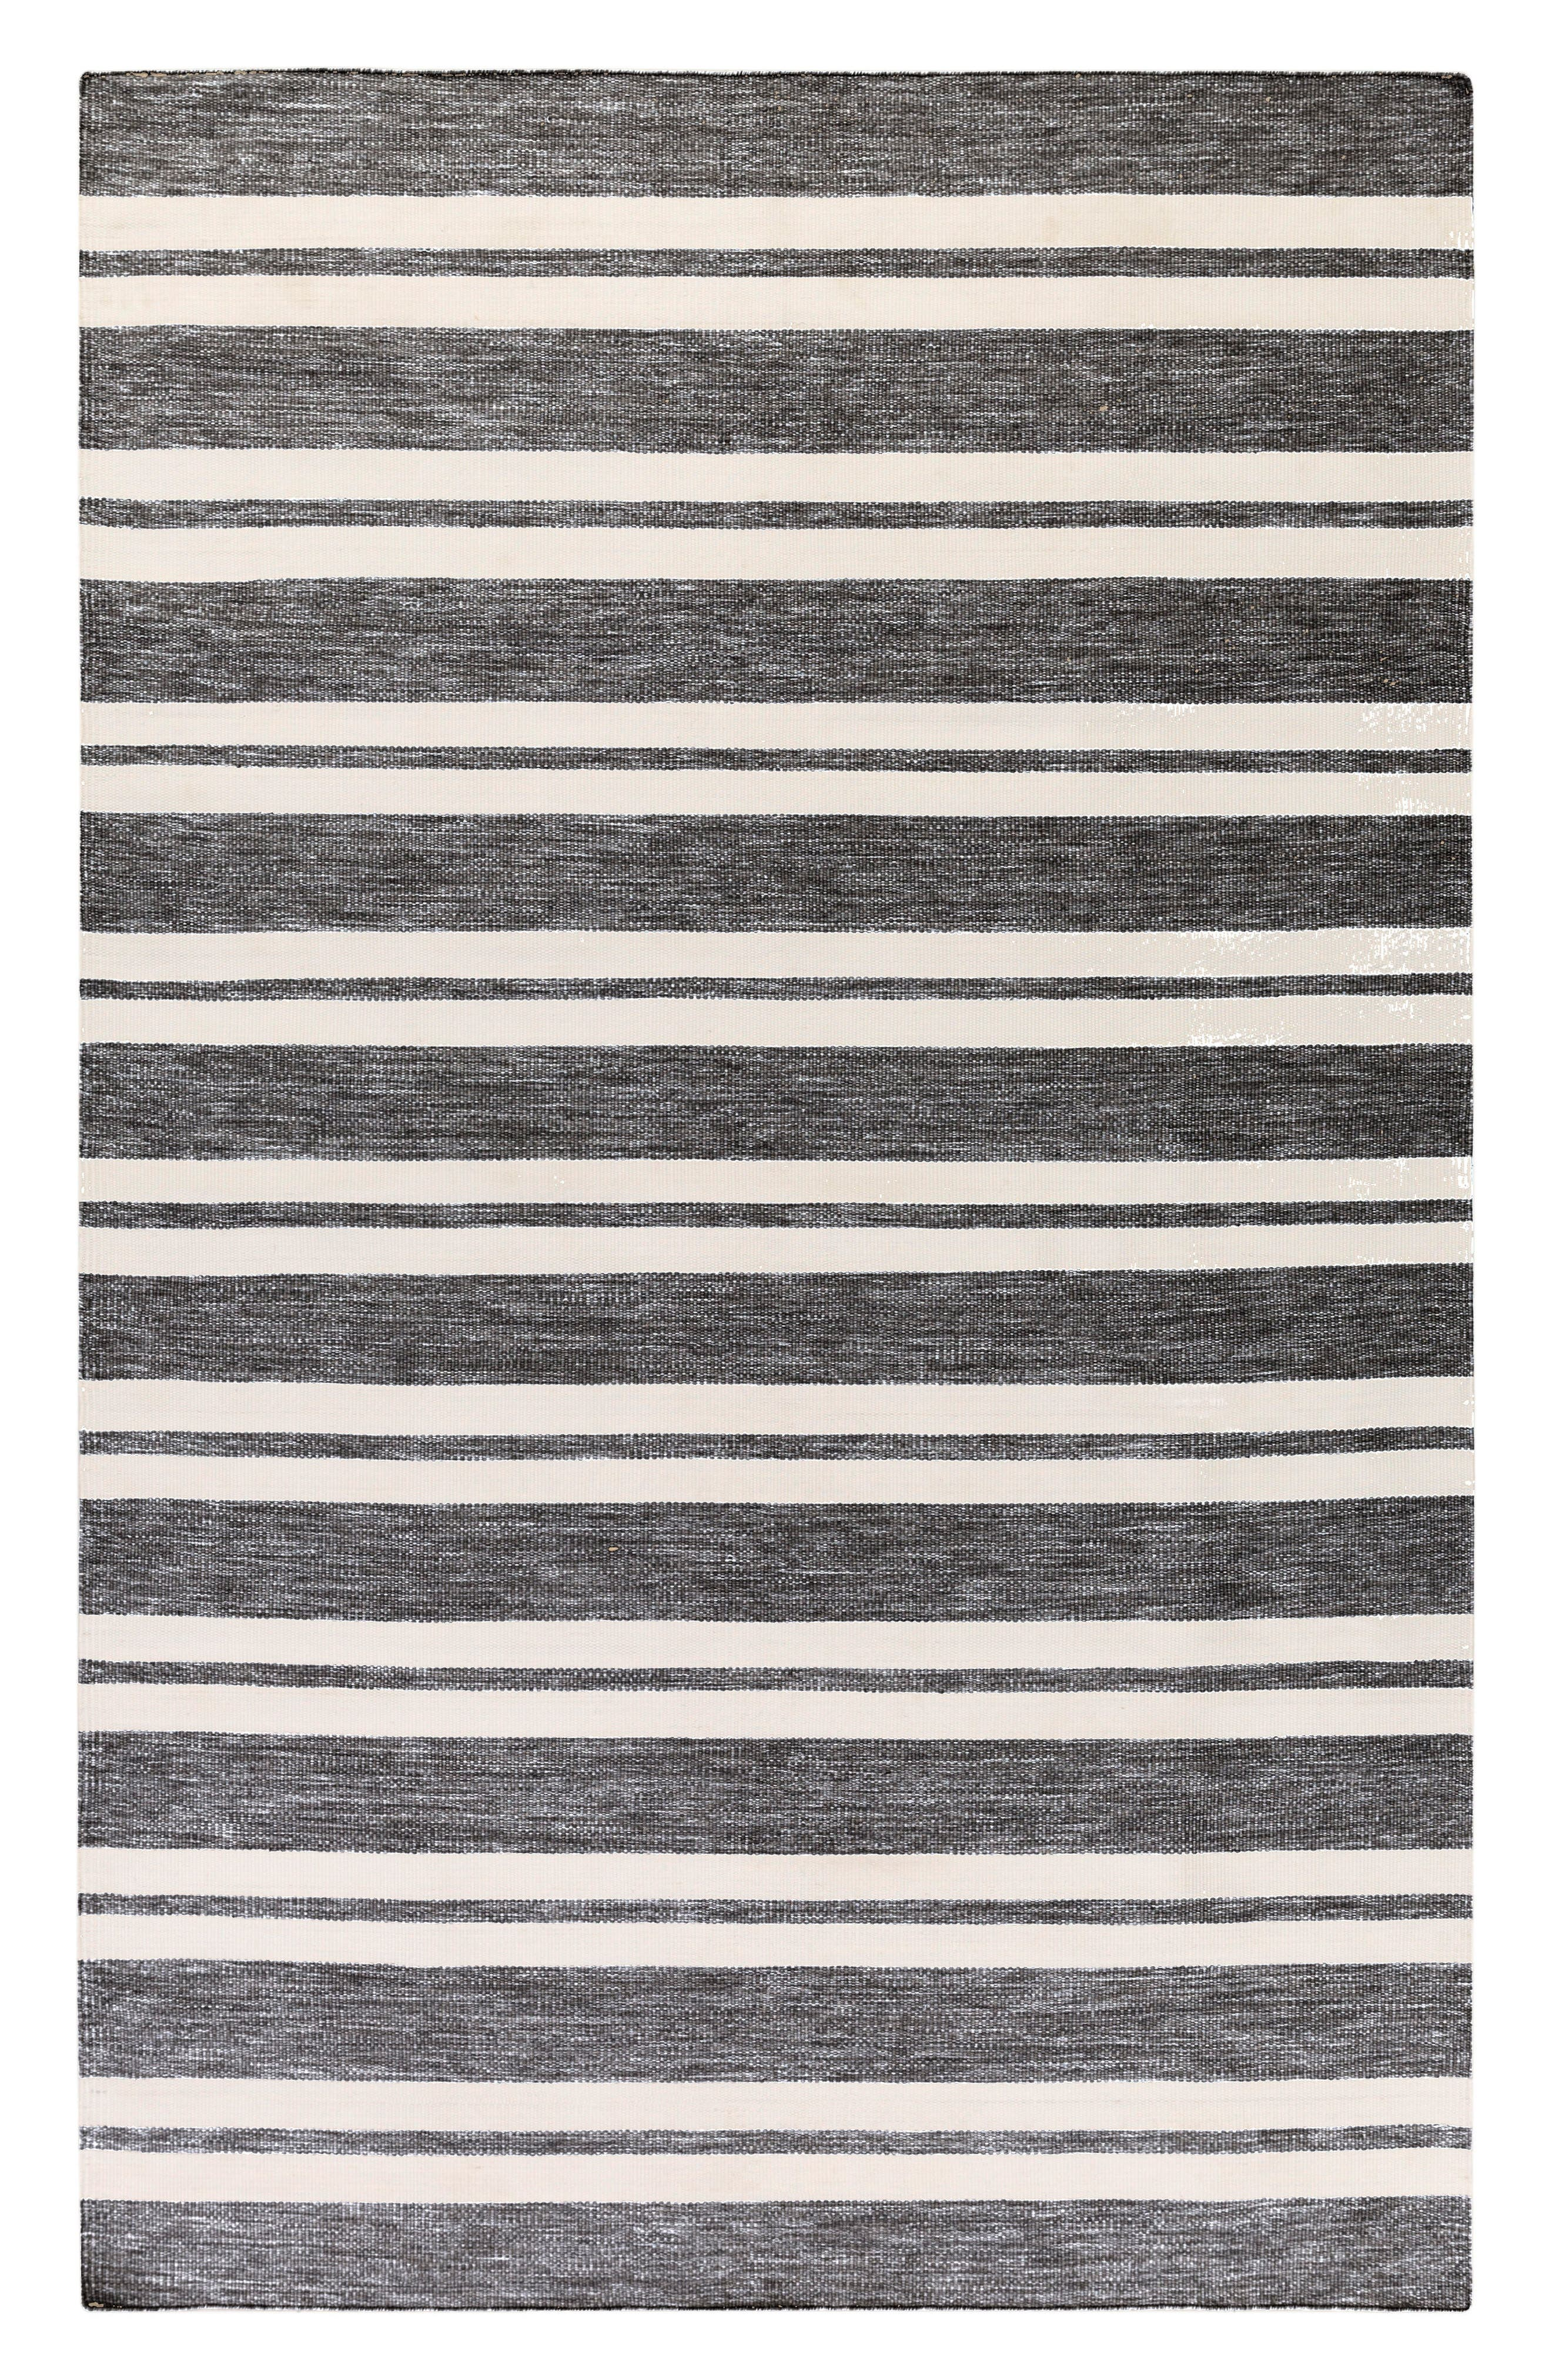 Alternate Image 1 Selected - Surya Home Everett Area Rug